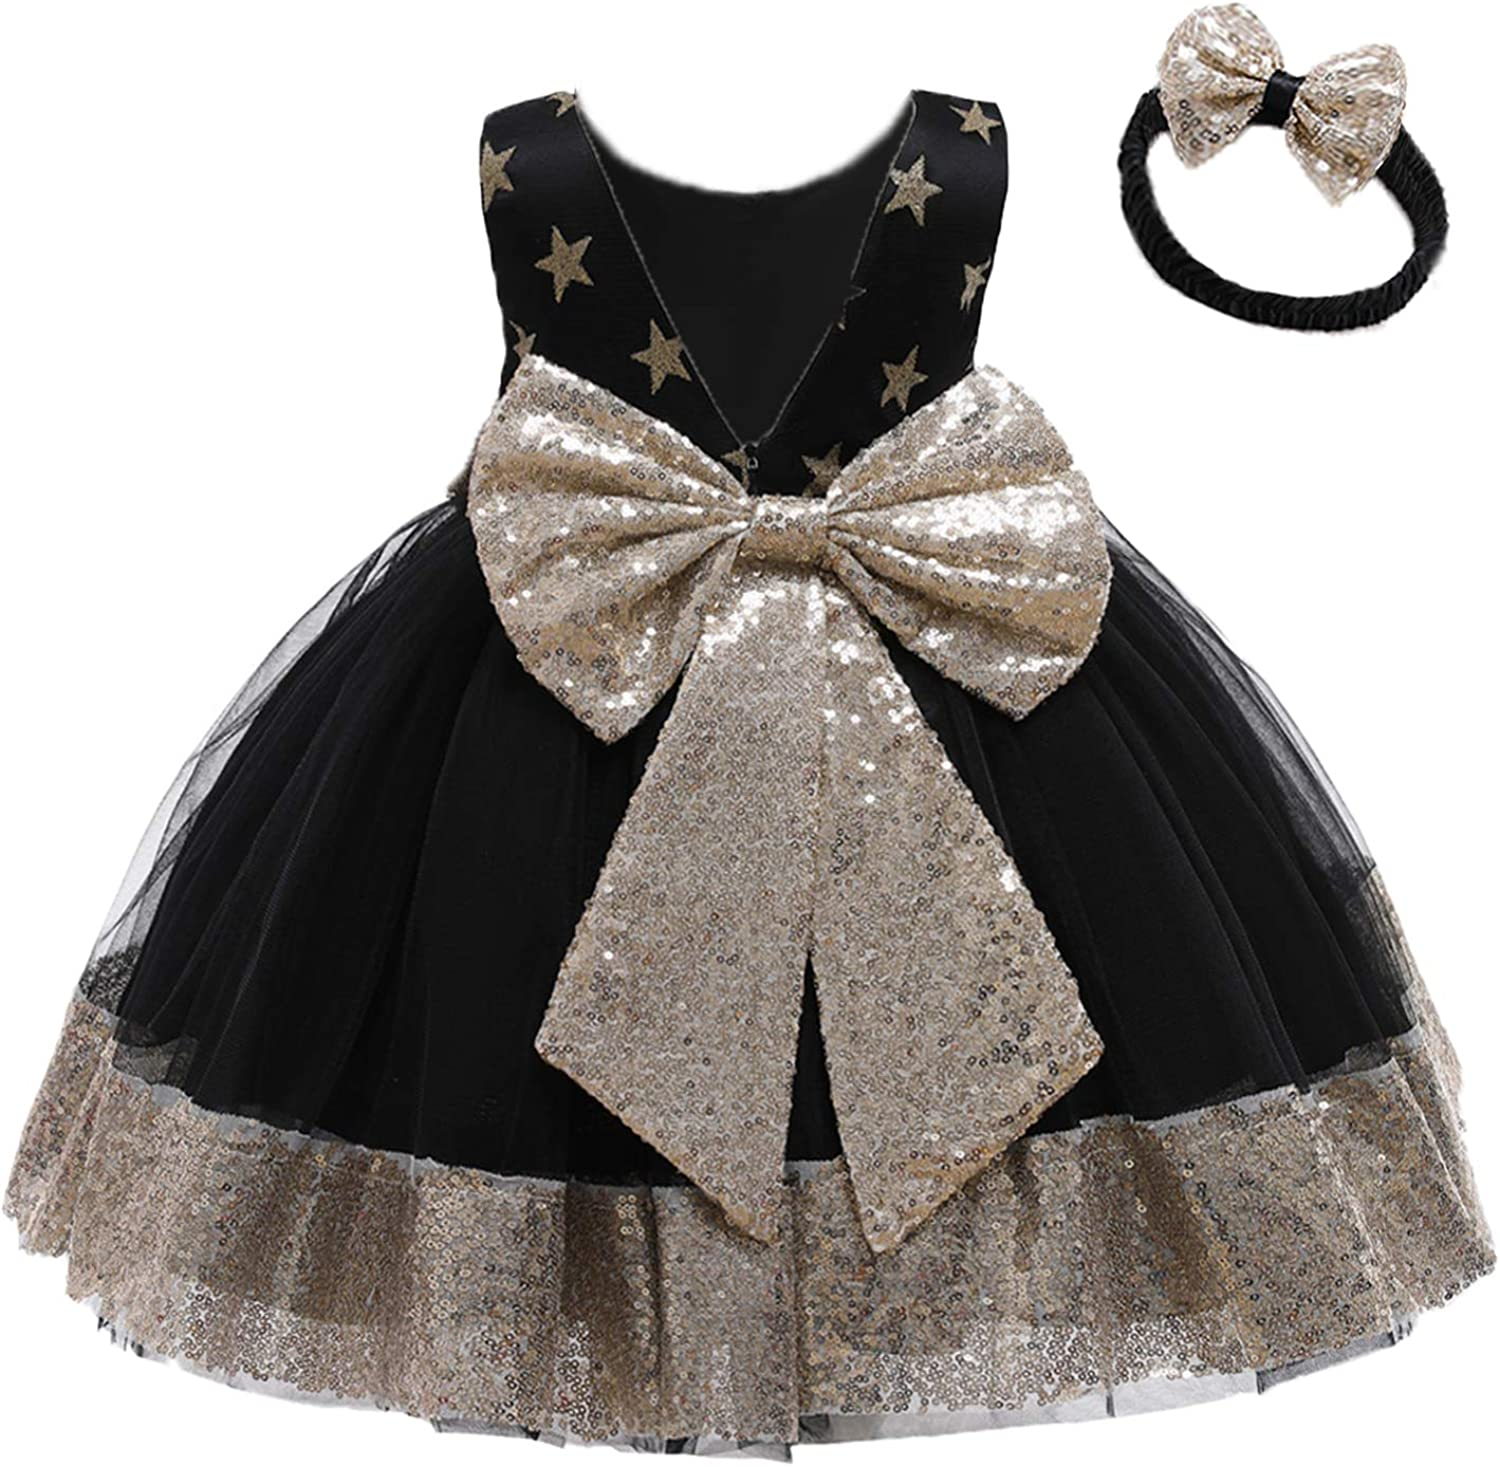 12M-6T Challenge the lowest price Baby Dress Sequins Bowknot Girl Pagea 2021 model Flower Lace Dresses